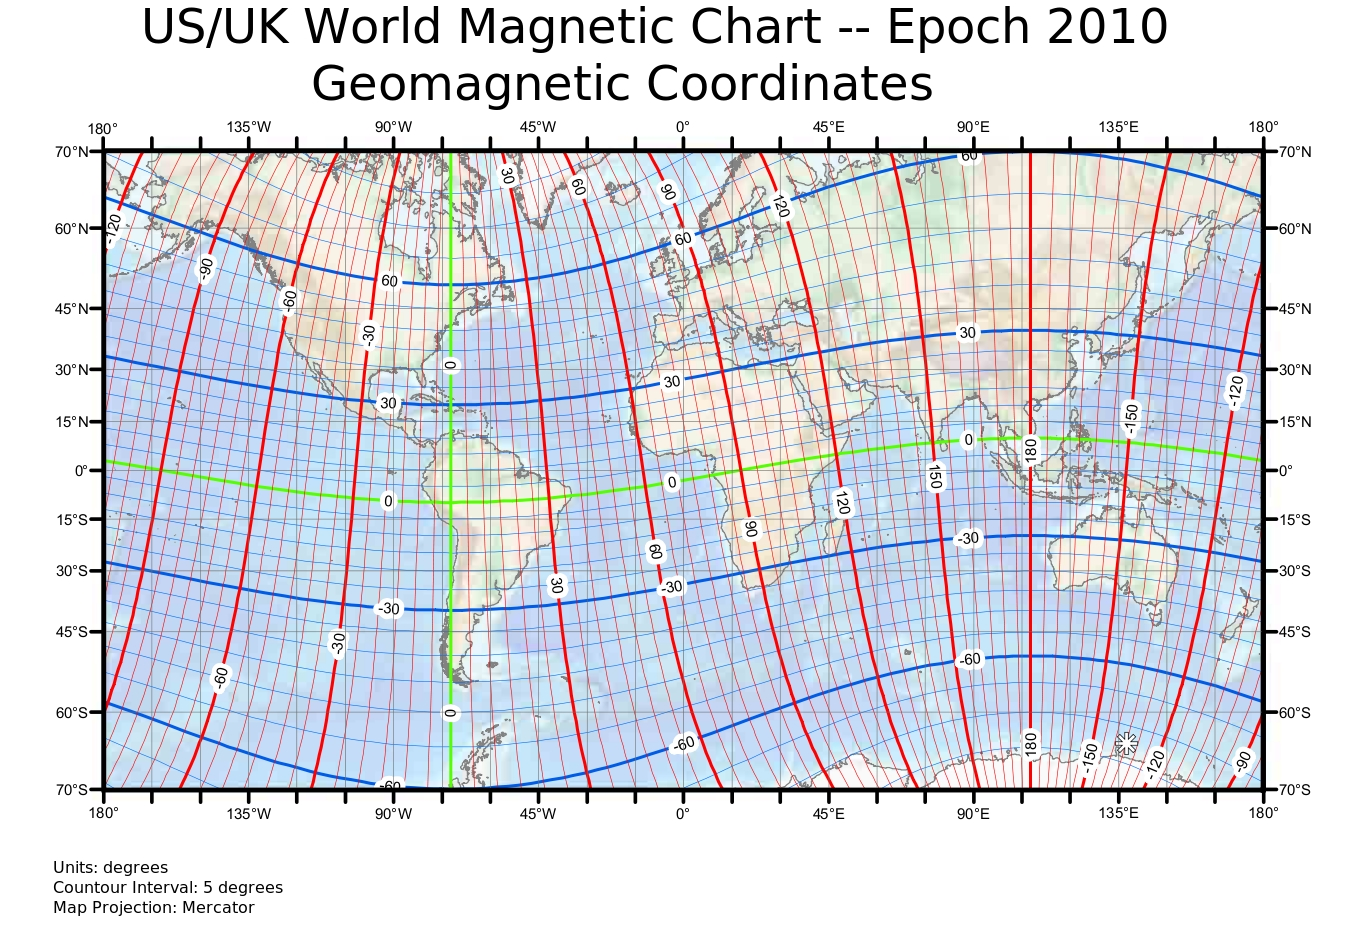 World Magnetic Chart.image.jpg